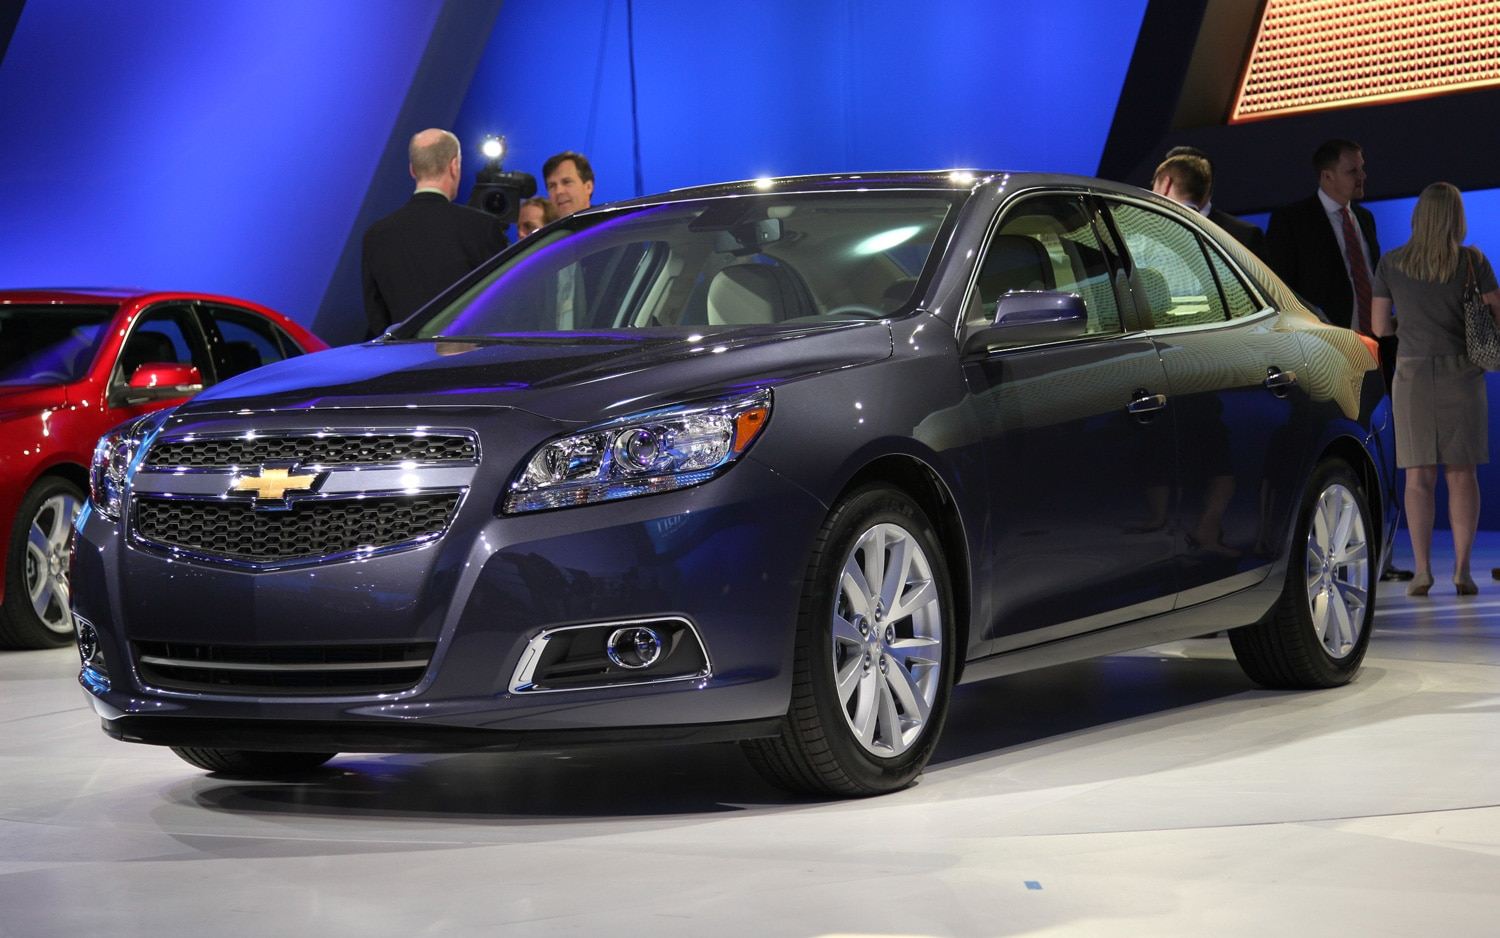 Malibu 2013 chevrolet malibu vin : 2013 Chevrolet Malibu Eco - 2011 New York International Auto Show ...